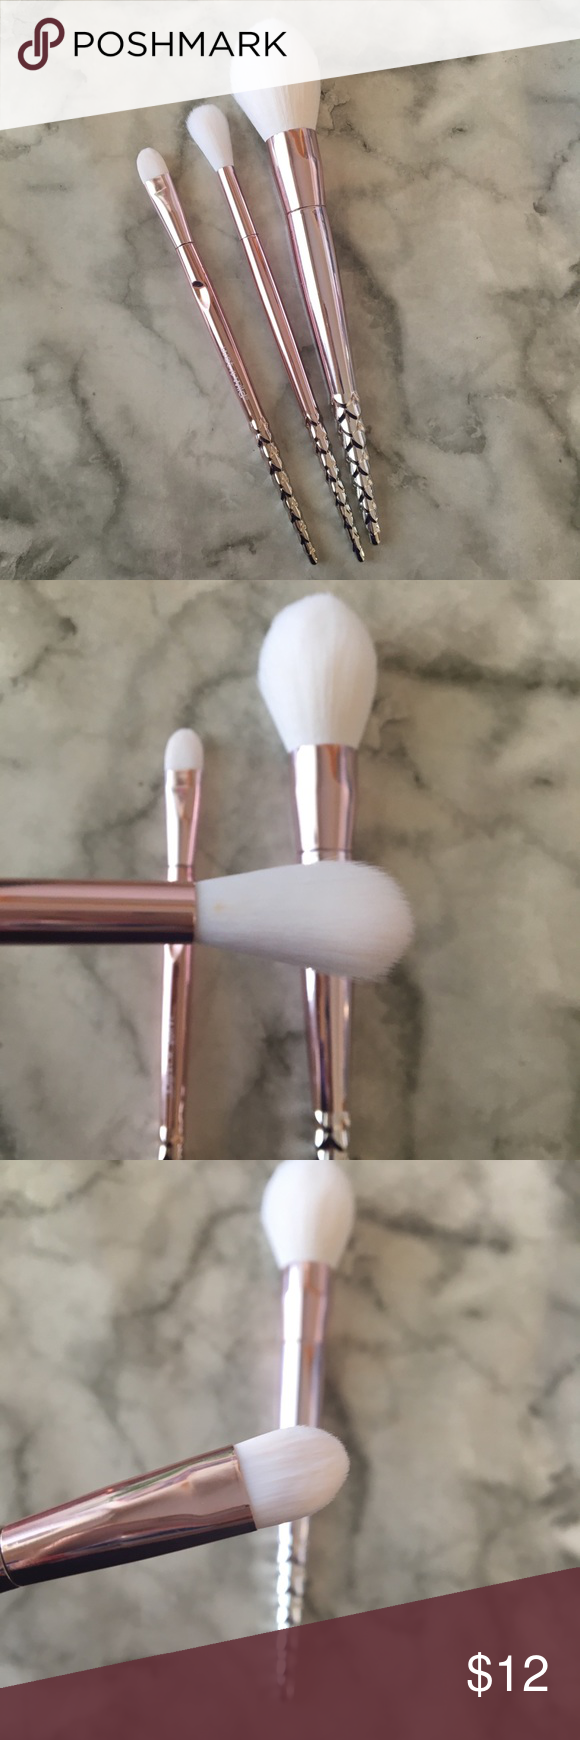 Wet n Wild rose Gold Brushes Never used, have been washed